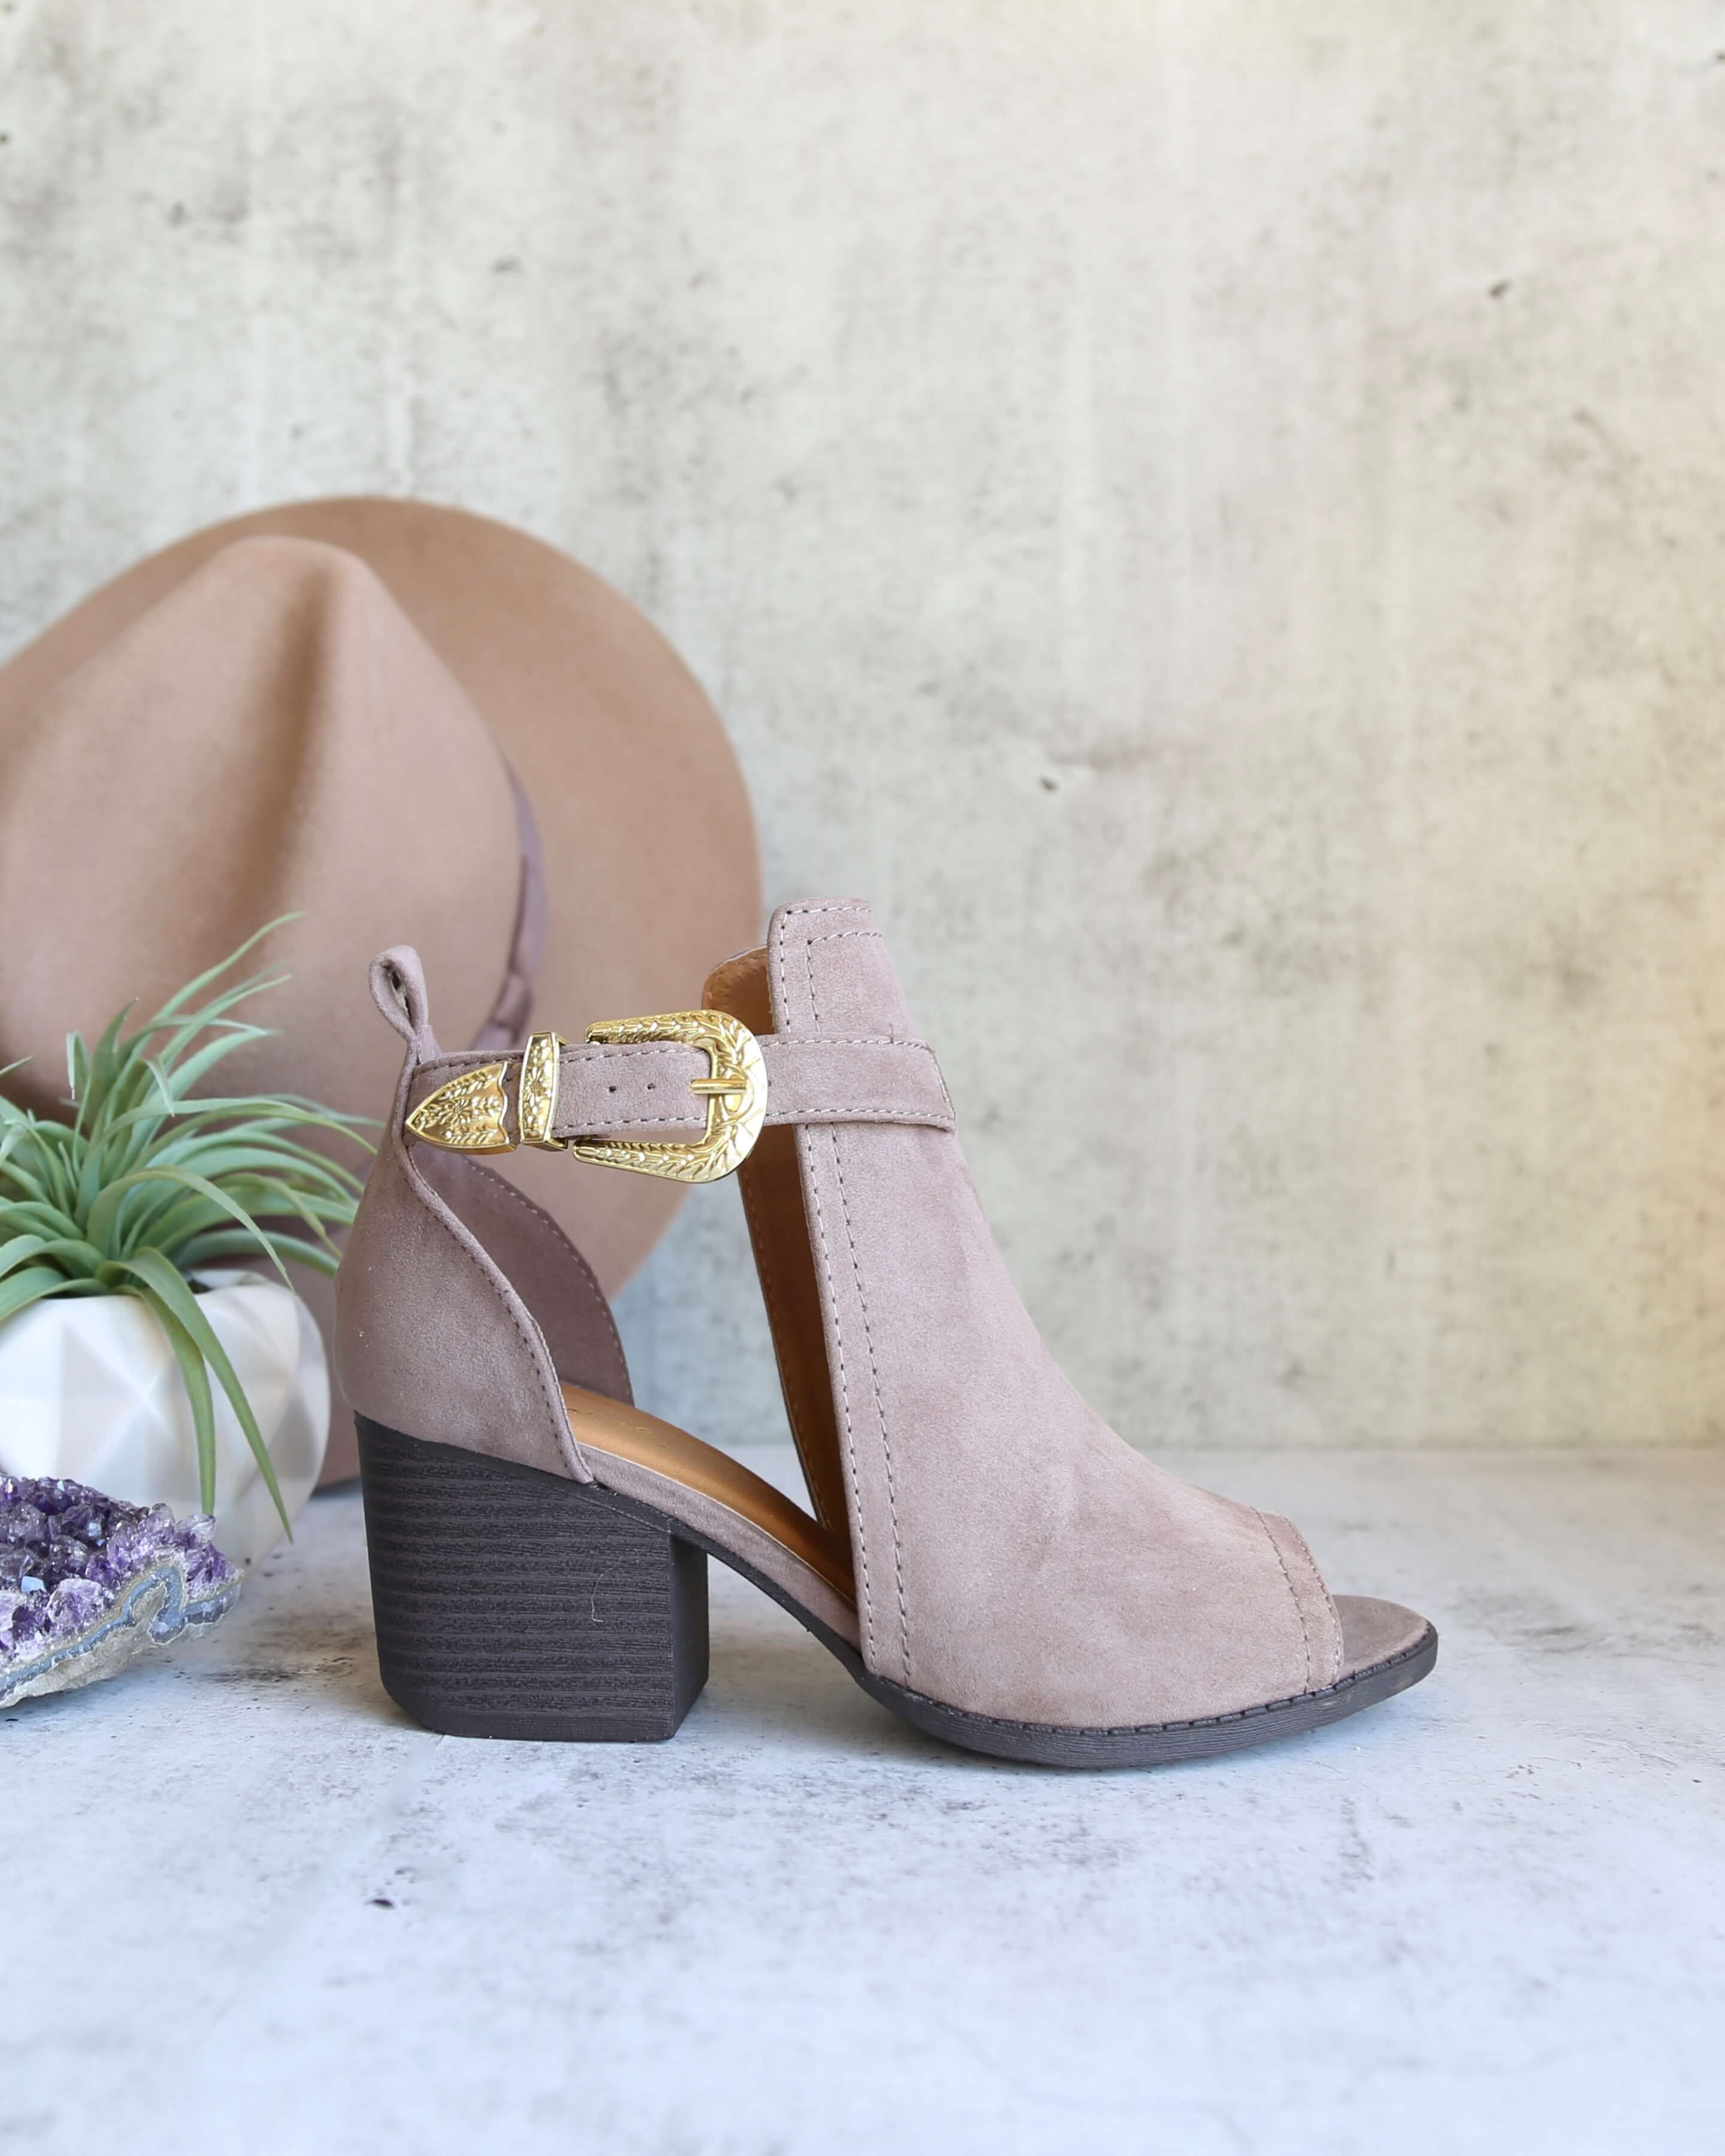 Image of Final Sale - Peep Toe Ankle Booties in Taupe